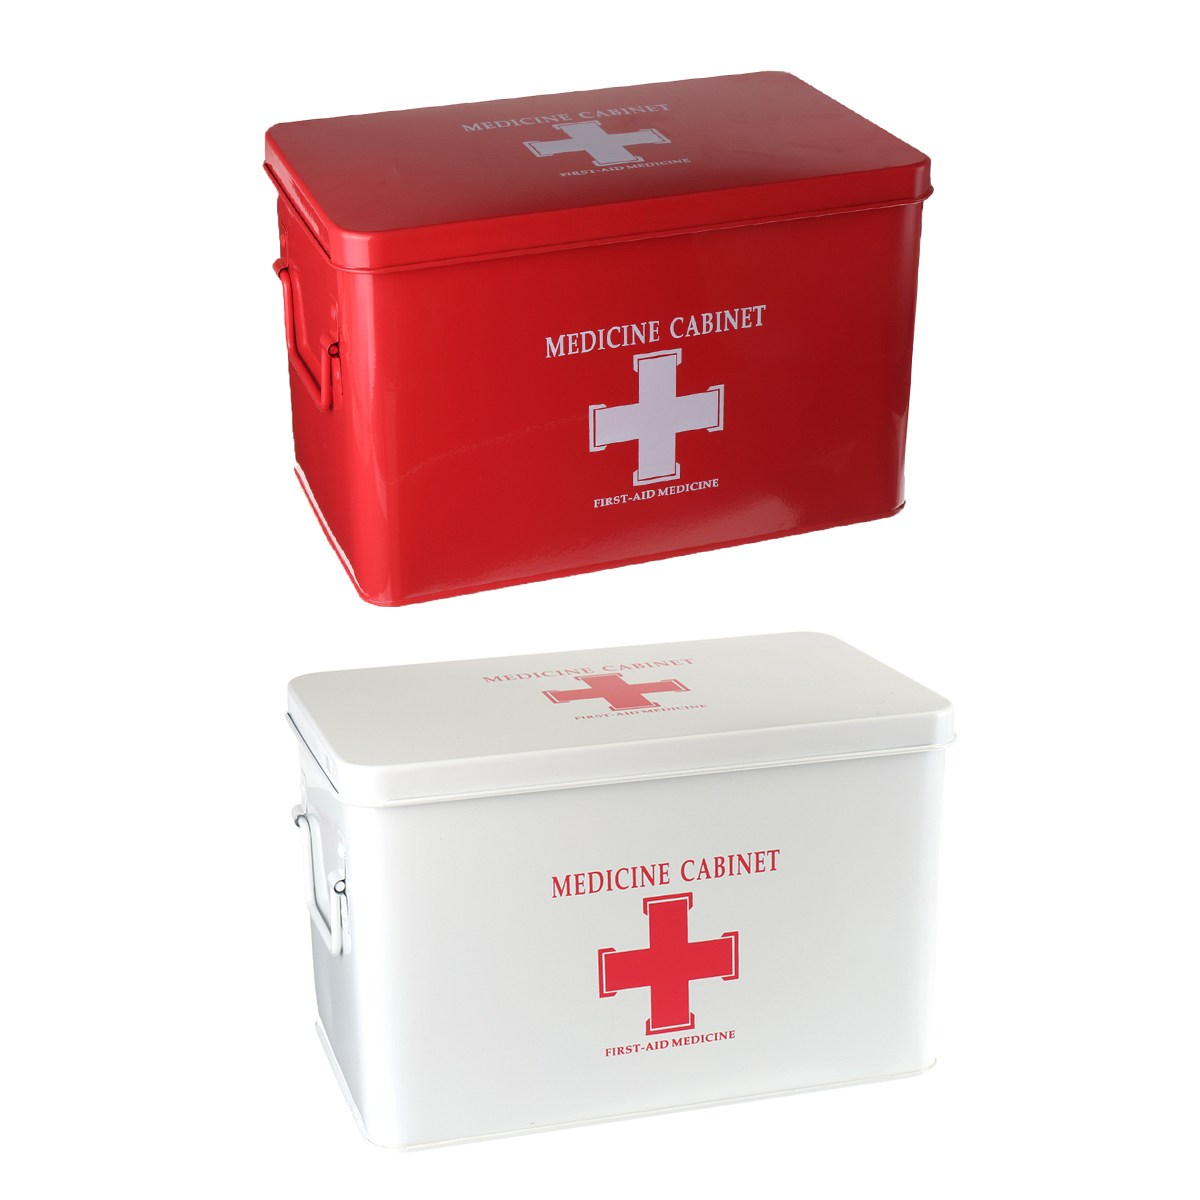 Safurance Metal Medicine Cabinet Multi-layered Family Box First Aid Storage Box Storage Medical Gathering Emergency Kits lecture notes emergency medicine